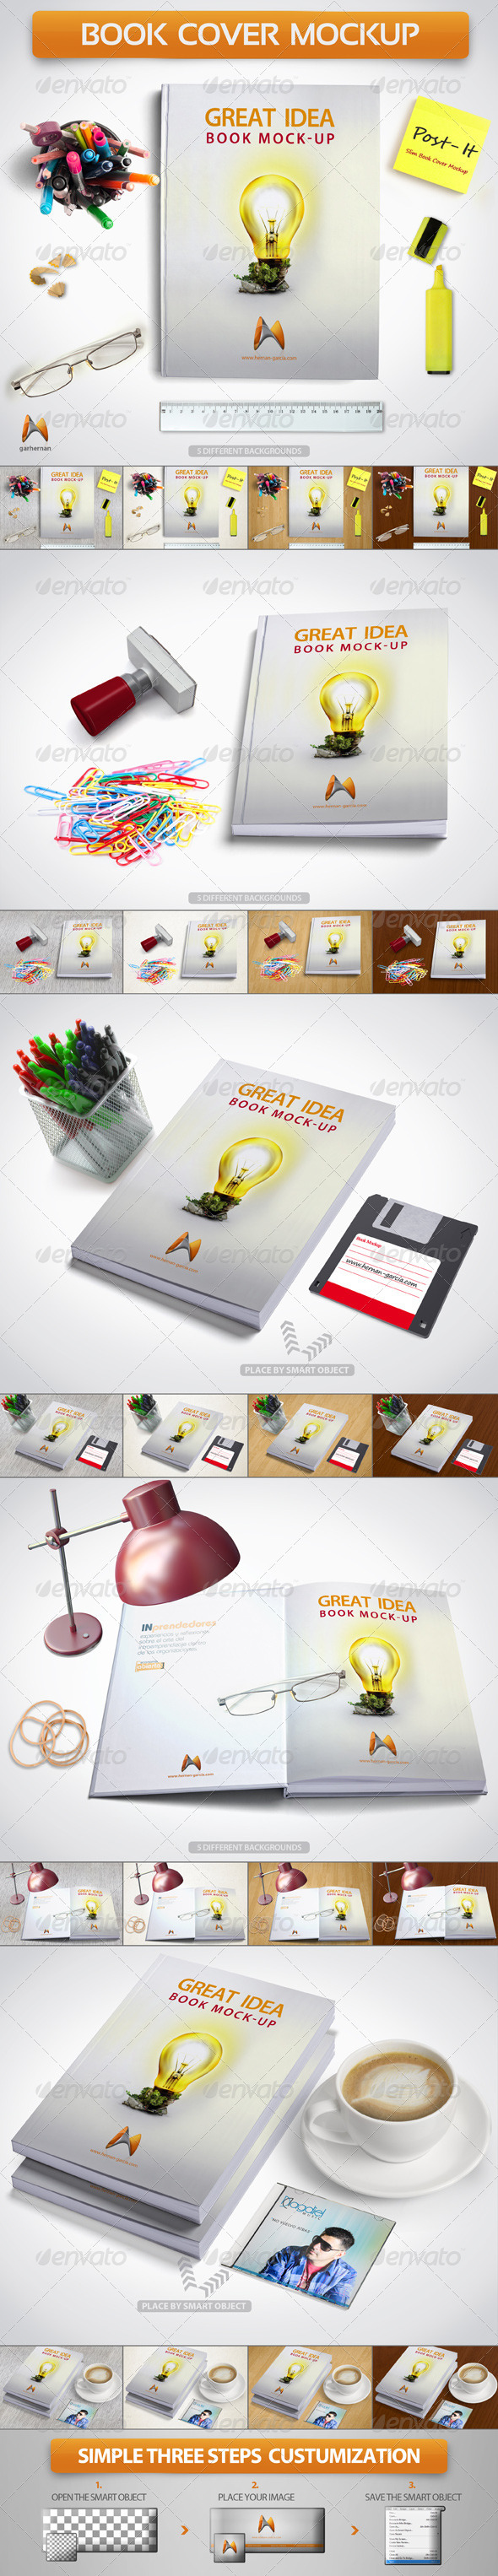 Book Cover Mockup - Product Mock-Ups Graphics